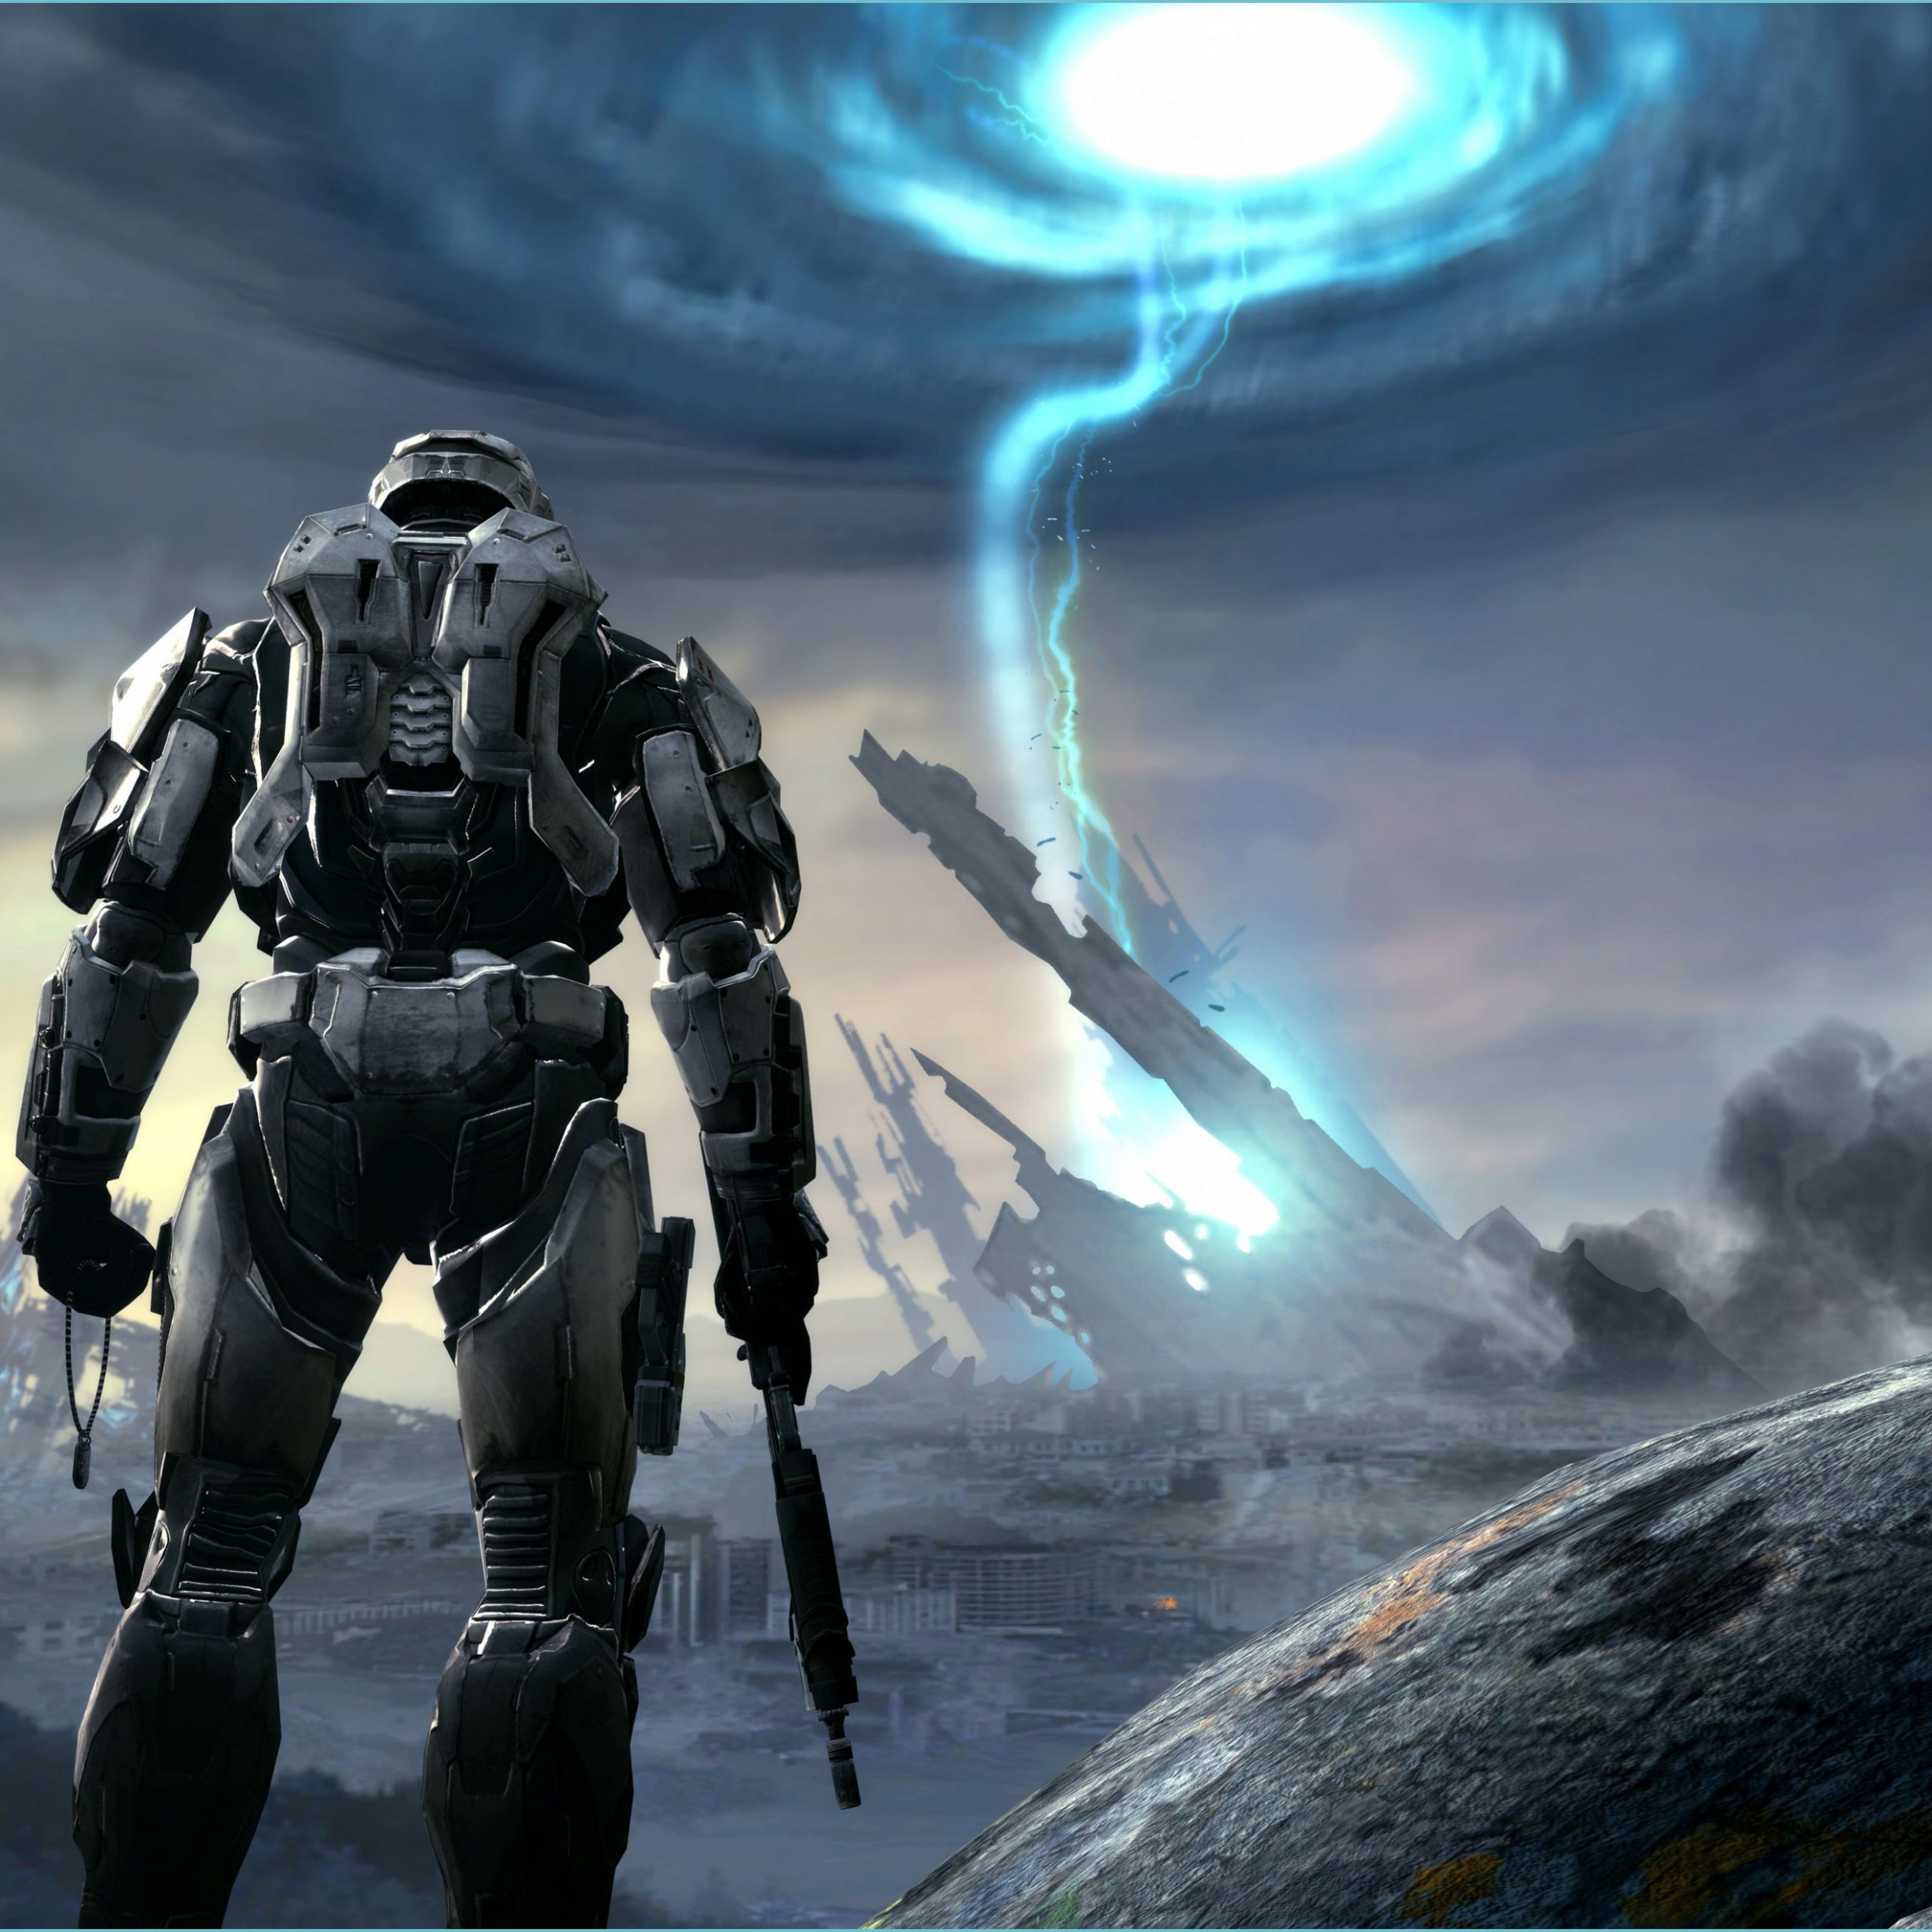 do you know how many people show up at halo wallpaper 10k halo wallpaper 10k